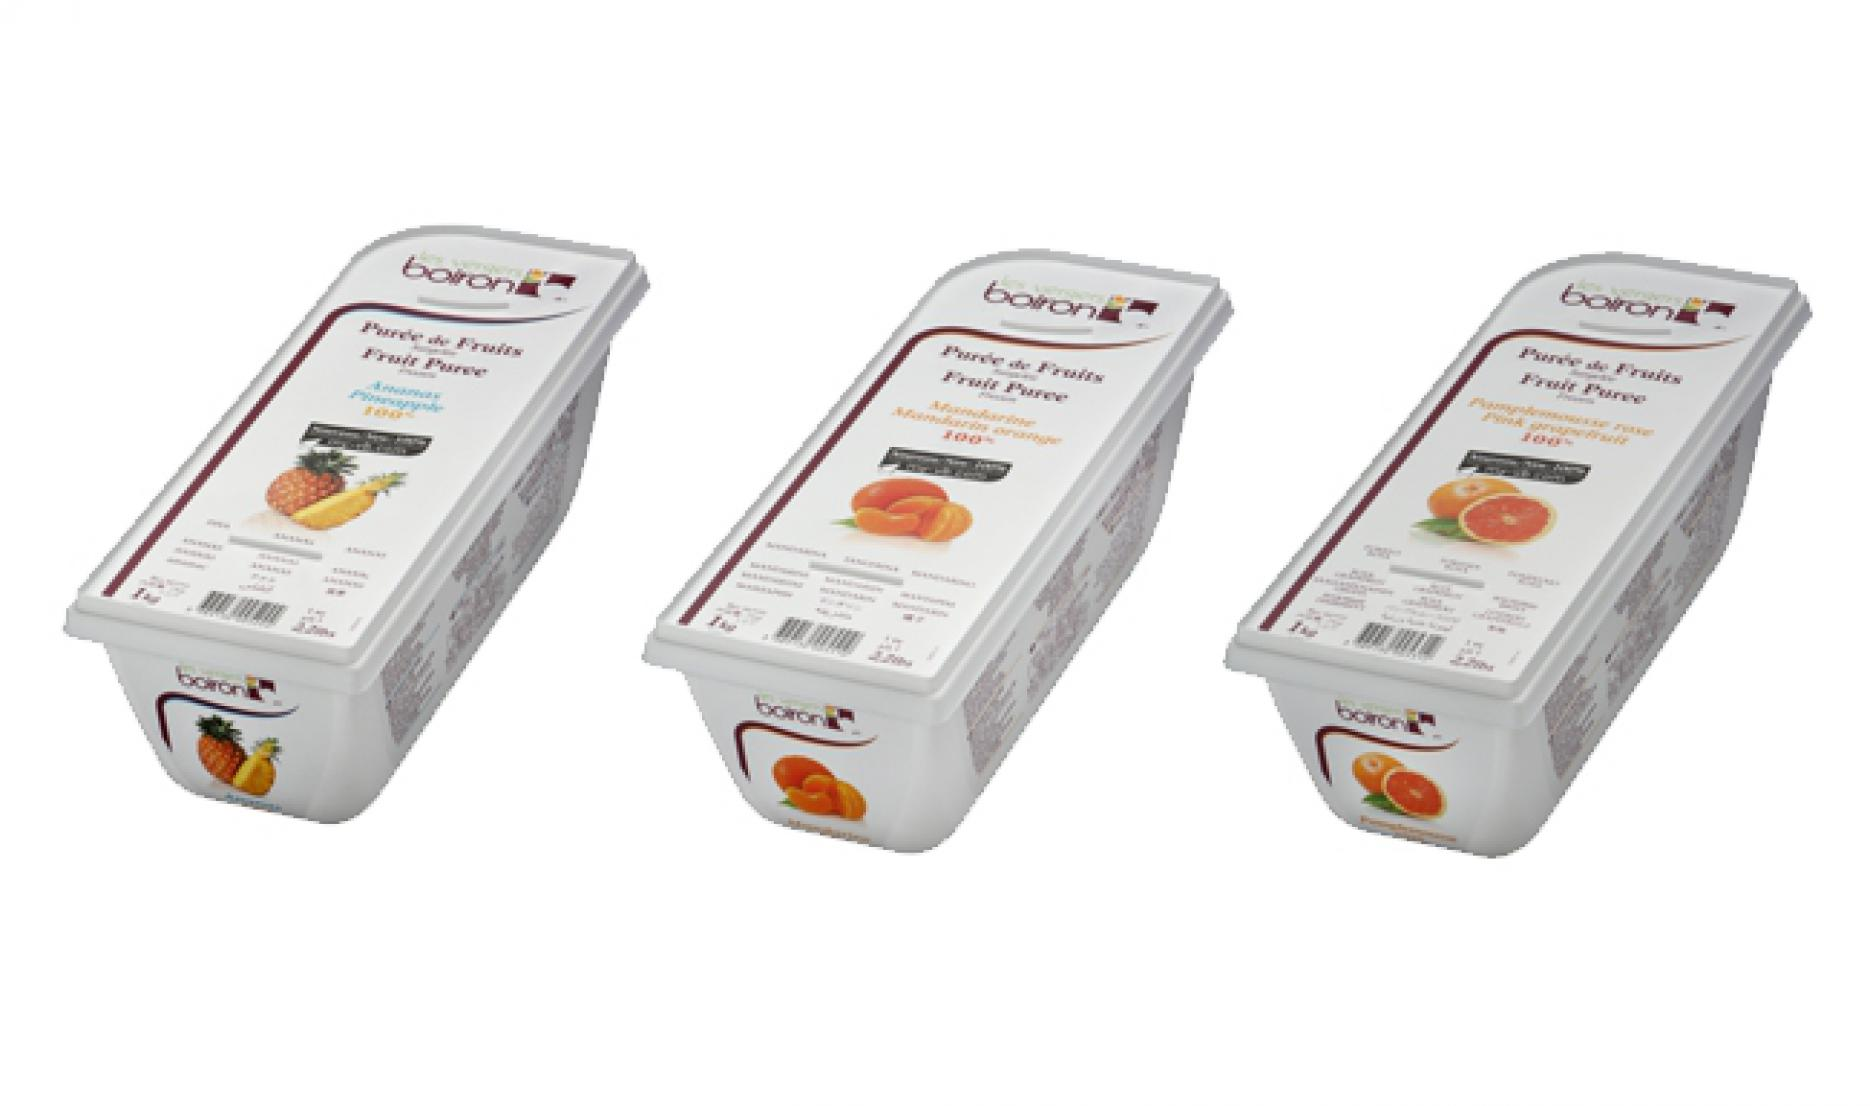 New: launch of 3 citrus fruit in 100% purees